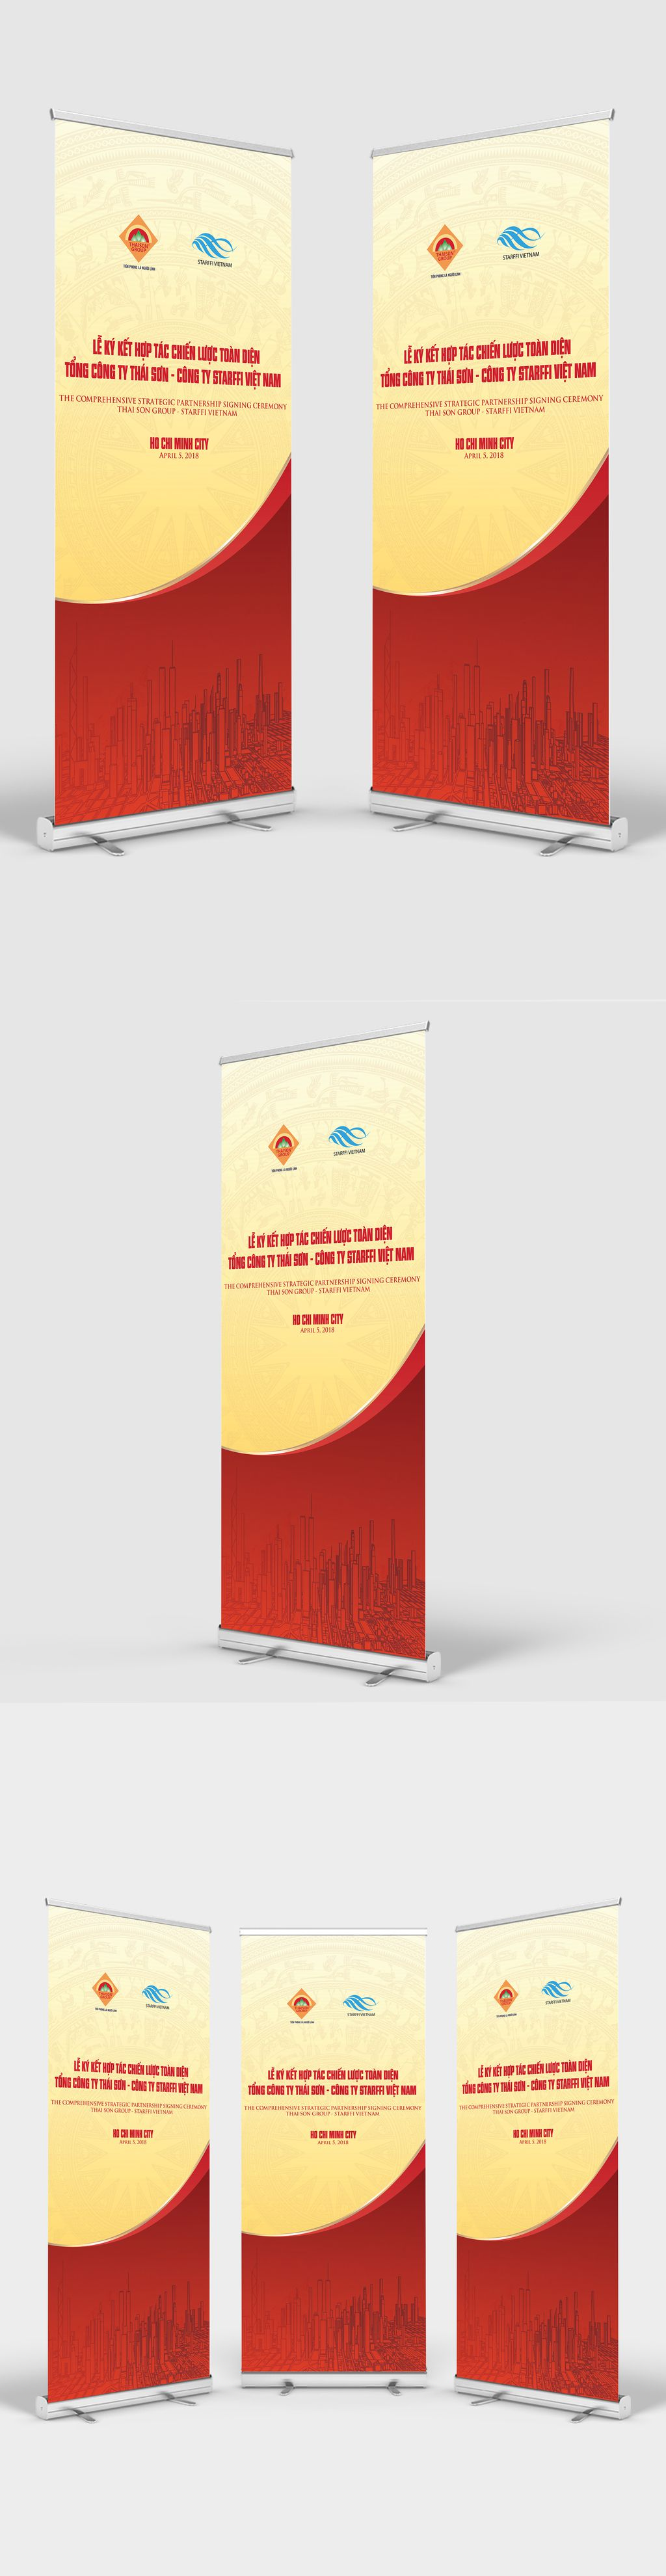 standee-doanh-nghiep-6 46K888piCFUC Standee doanh nghiệp    Manage.vn